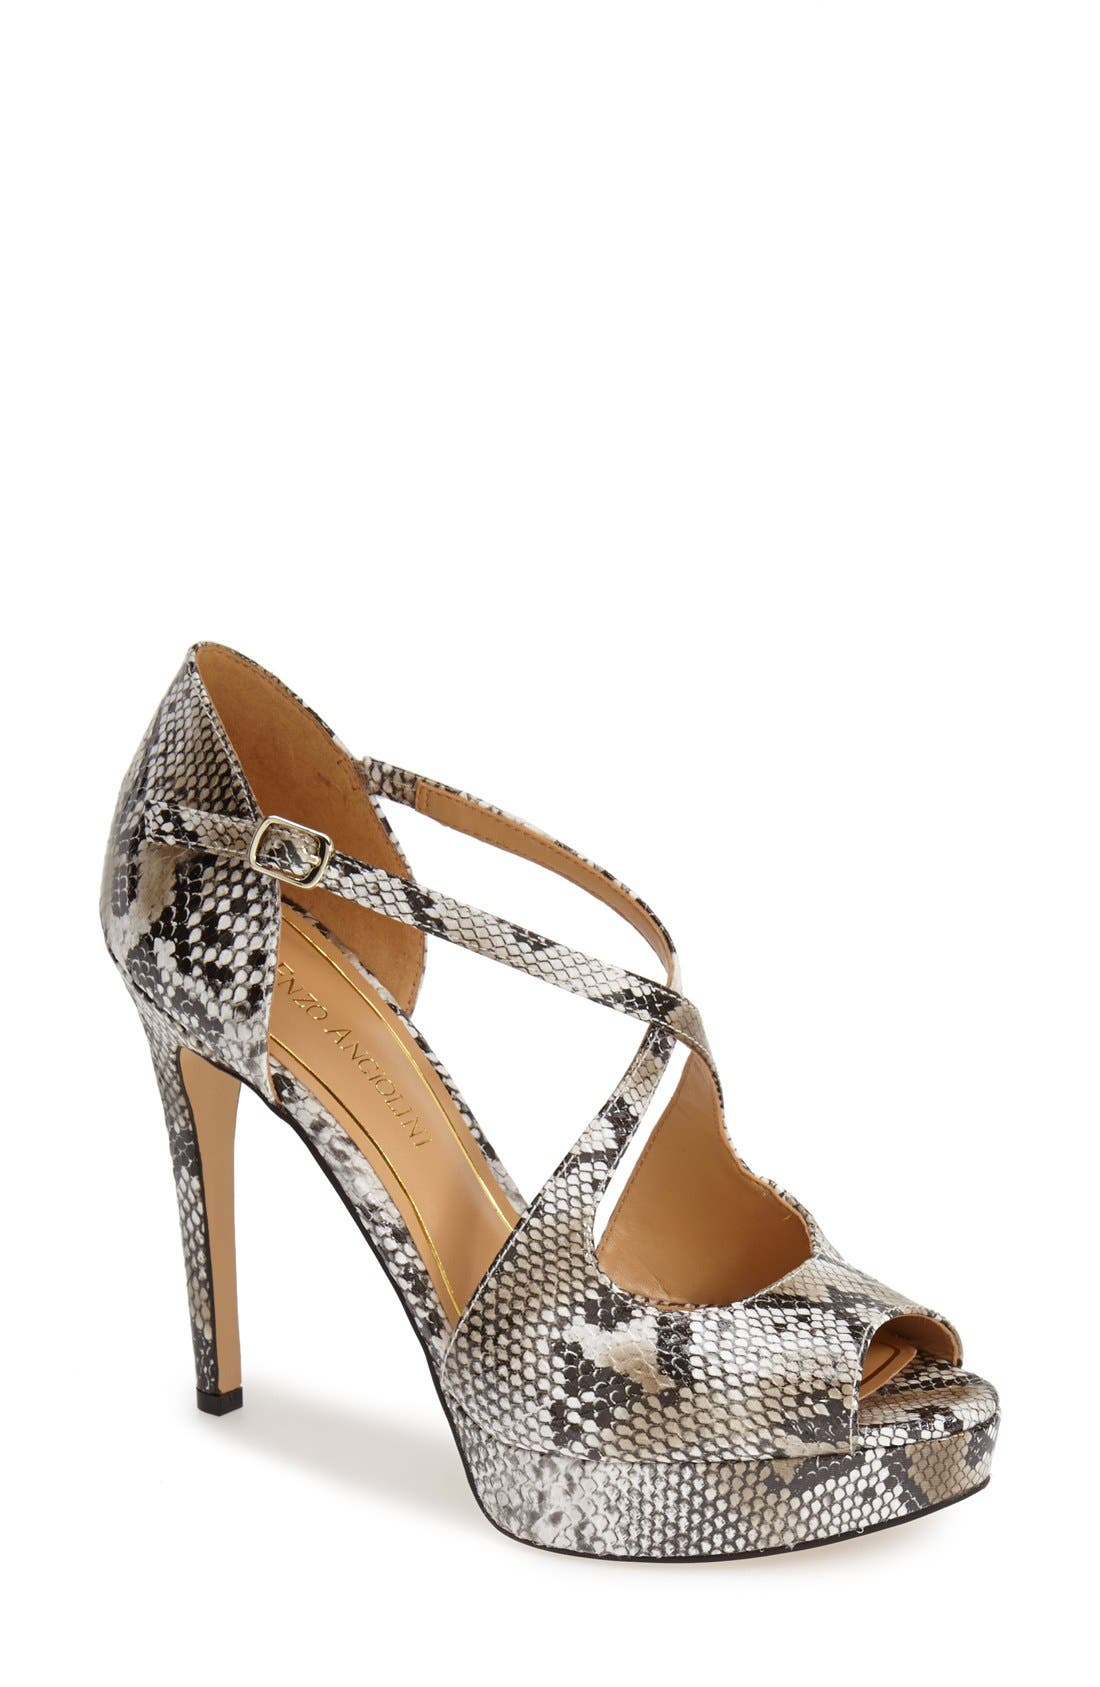 Alternate Image 1 Selected - Enzo Angiolini 'Abalina' Platform Pump (Women)